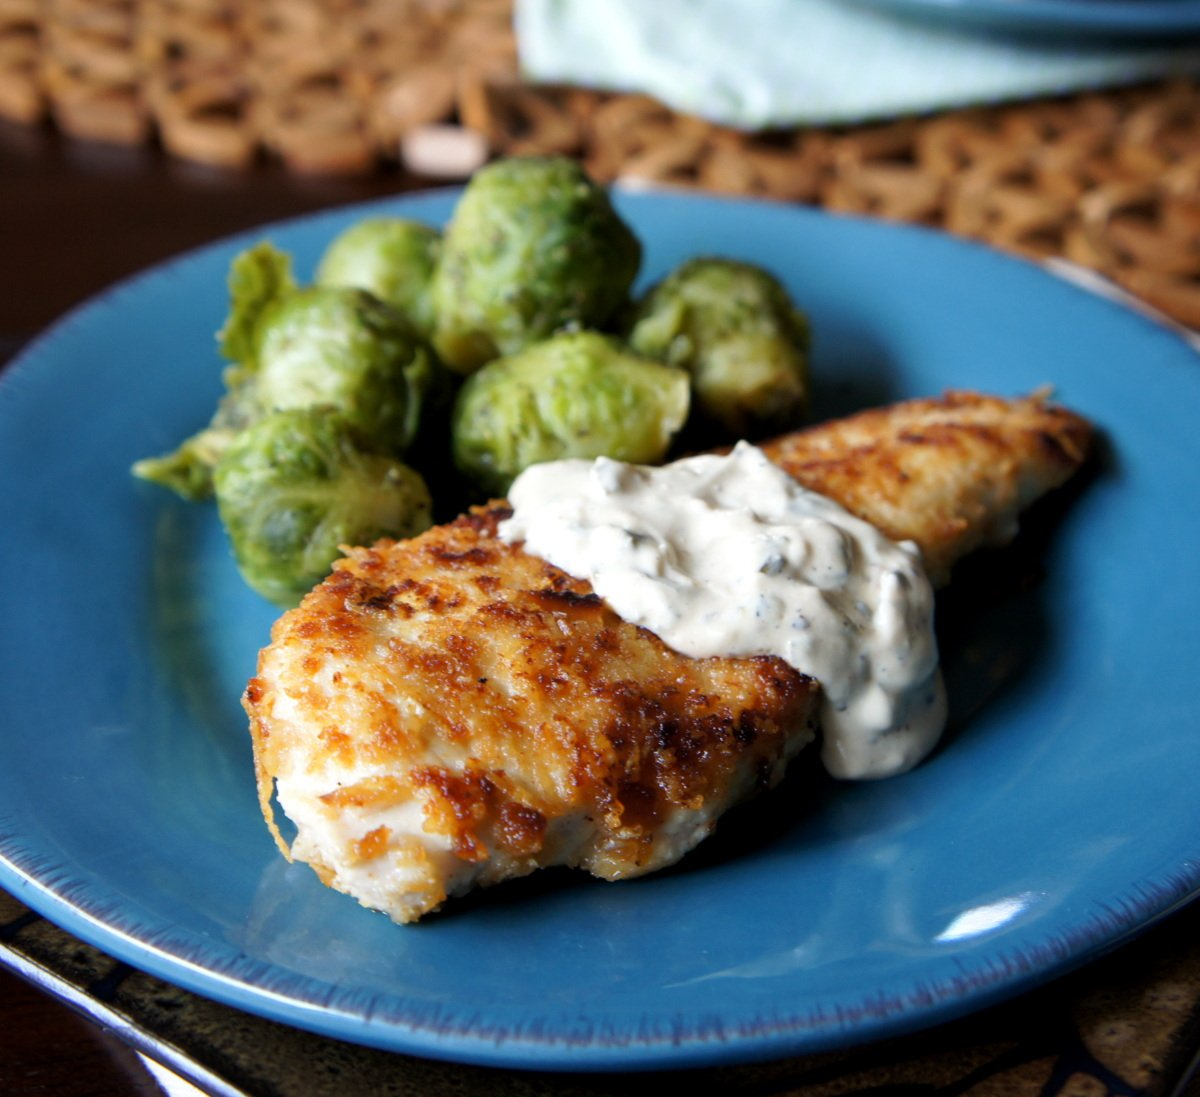 Parmesan Crusted Chicken With A Creamy Lemon Chive Sauce